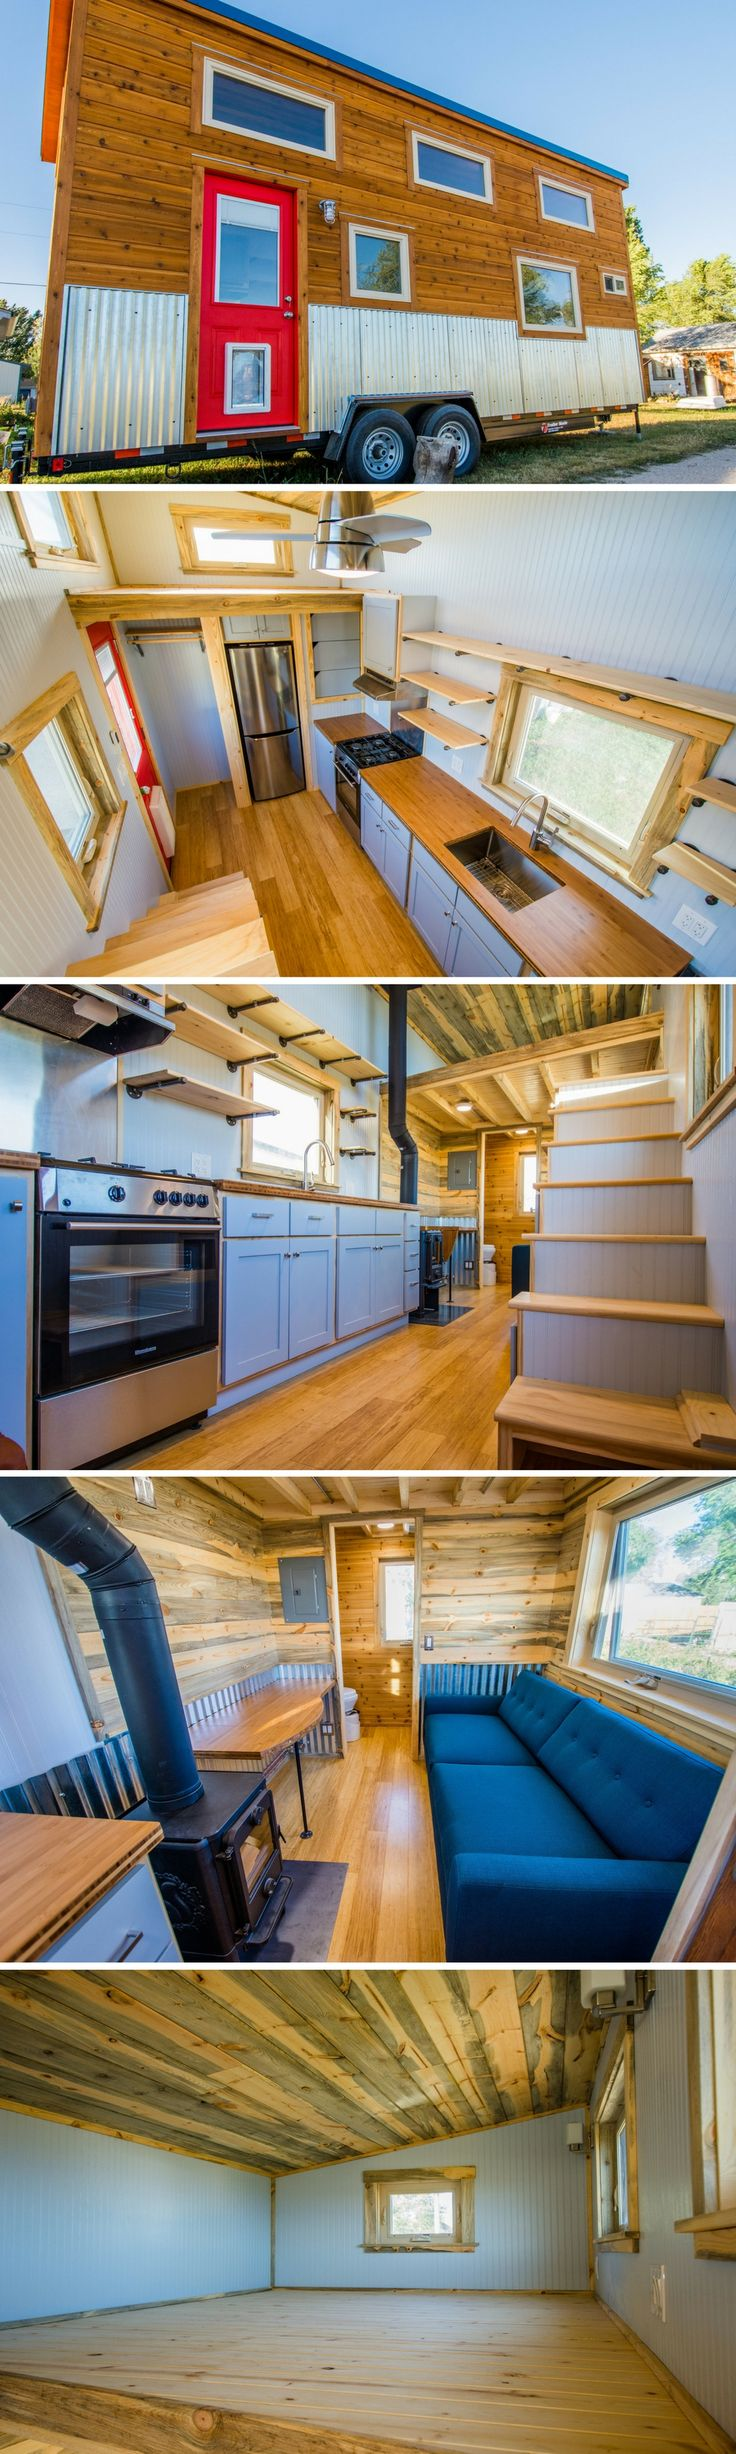 A 192 sq ft tiny house